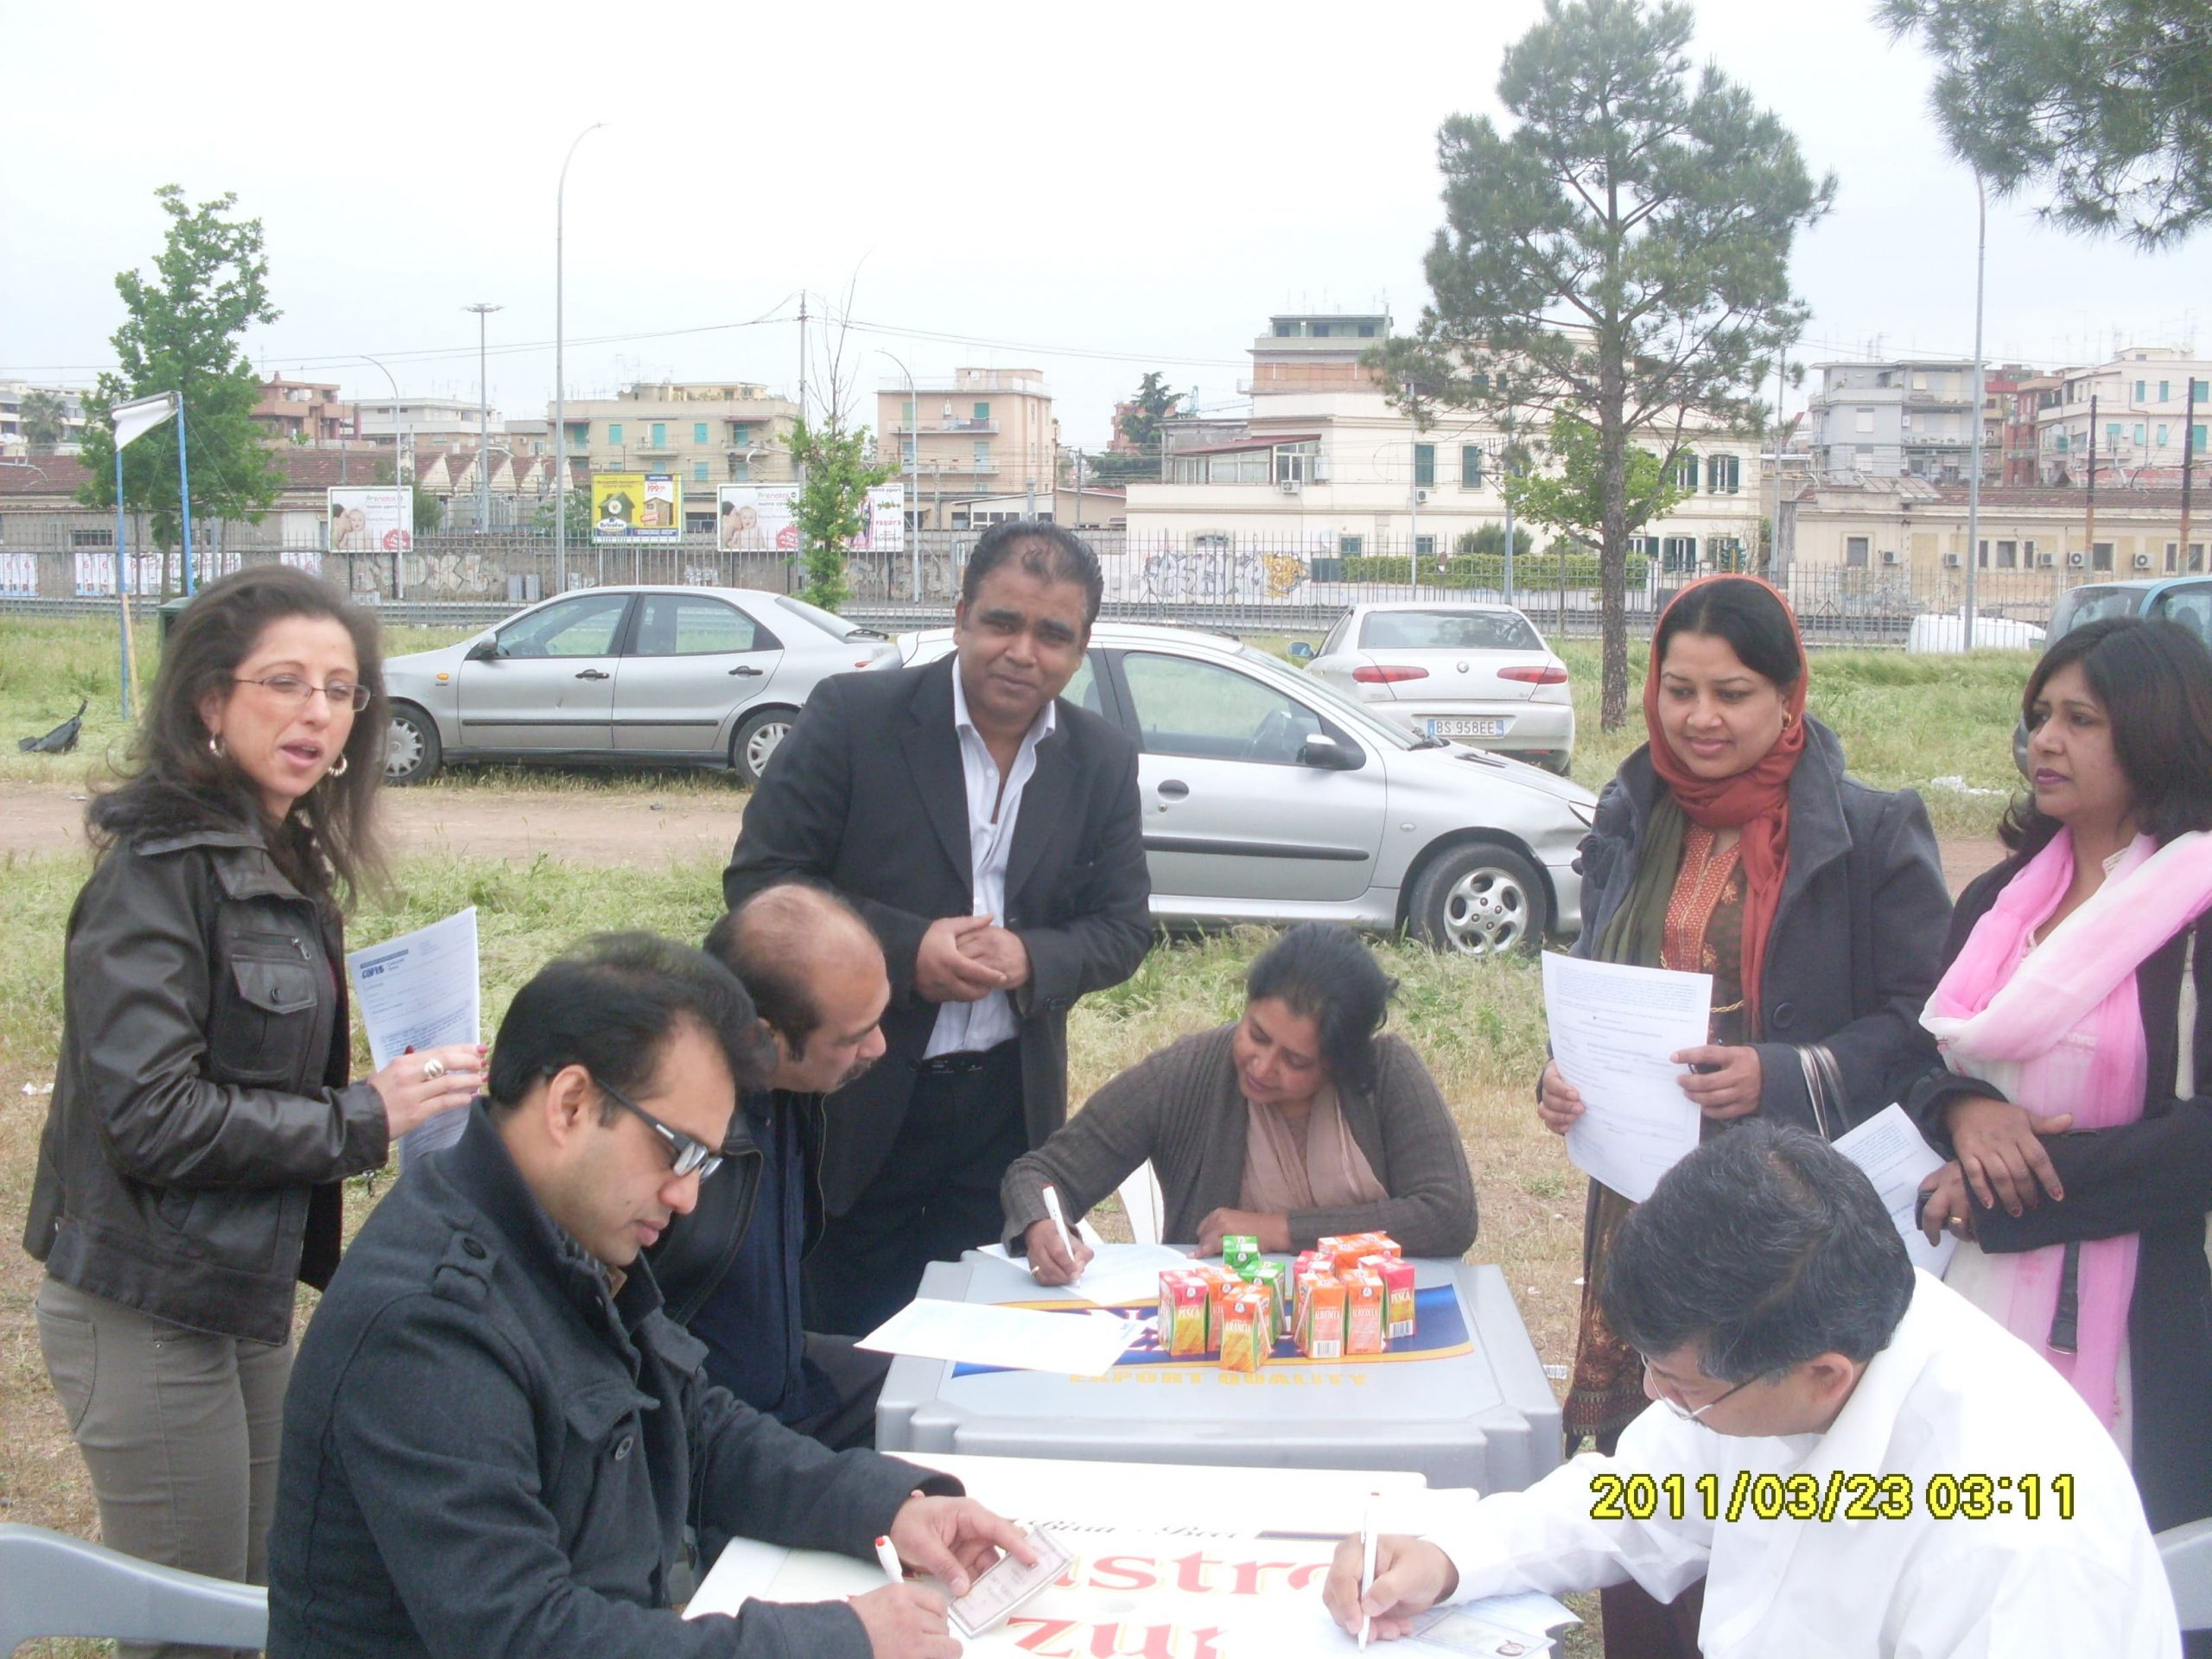 SOME PICTURE BLOOD DONATION PROGRAM